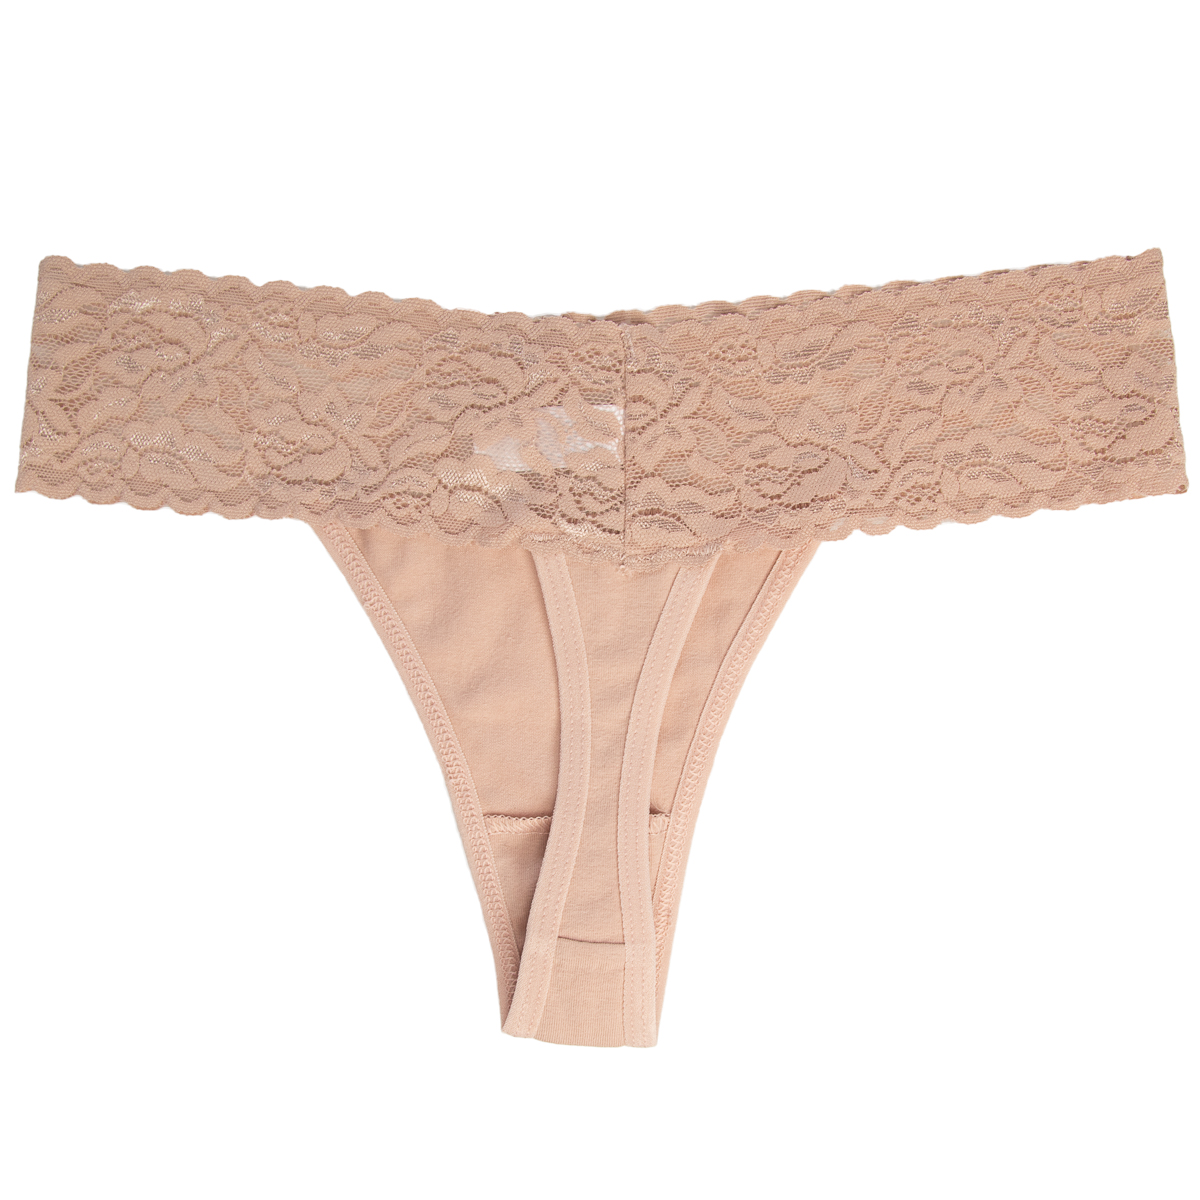 6-Pack-Cotton-Lace-Thong-Underwear-For-Women-Soft-Sexy-Lingerie-Panties-Thongs thumbnail 21